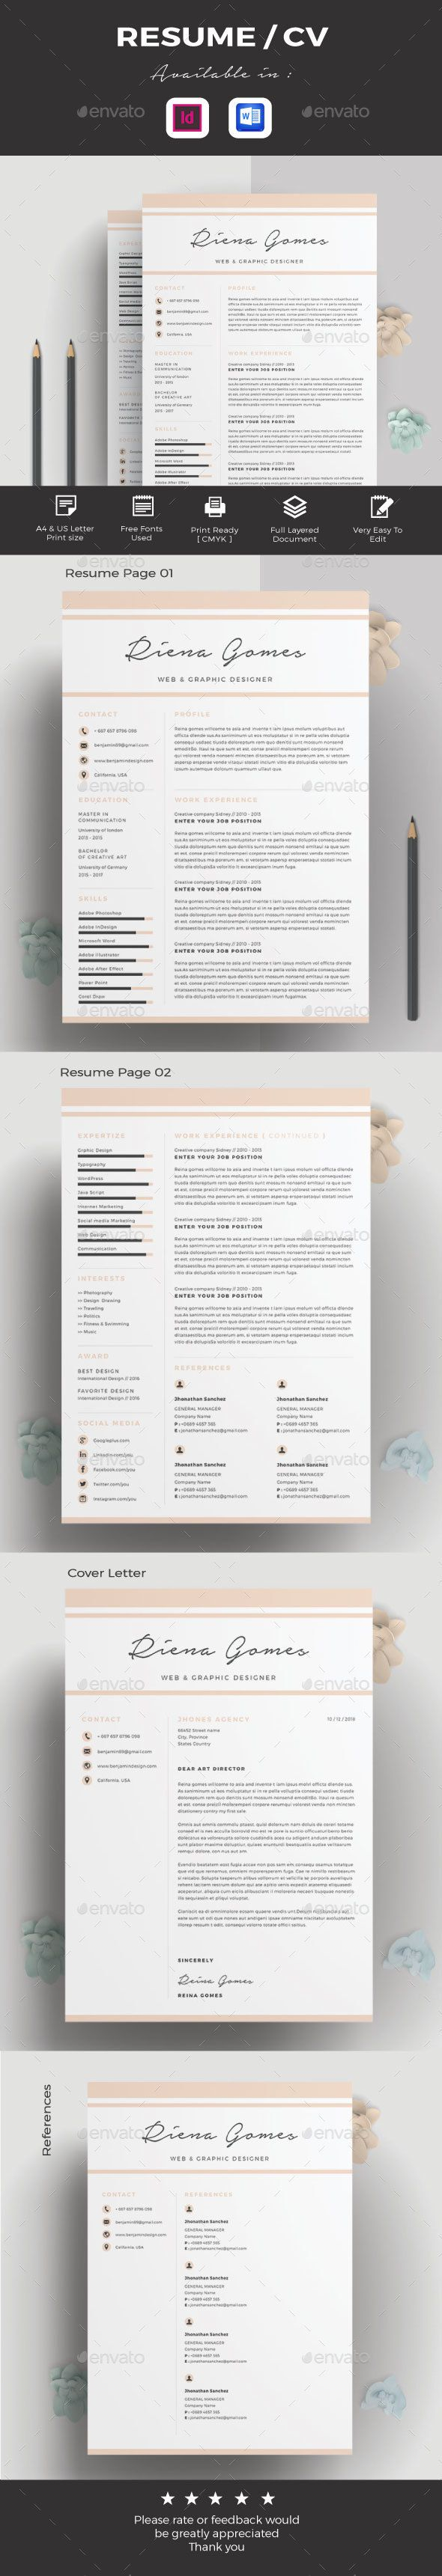 Resume / CV, Cv/Resume This is a professional and clean Resume template that can be used for any type of Resume and fully editable and customizable.This template is Super Easy to Edit. You can quickly tailor make your job resume for any opportunity and help you to get your job. This resume is available in the format InDesign CS 4, CS 5, CS 6 and Mi